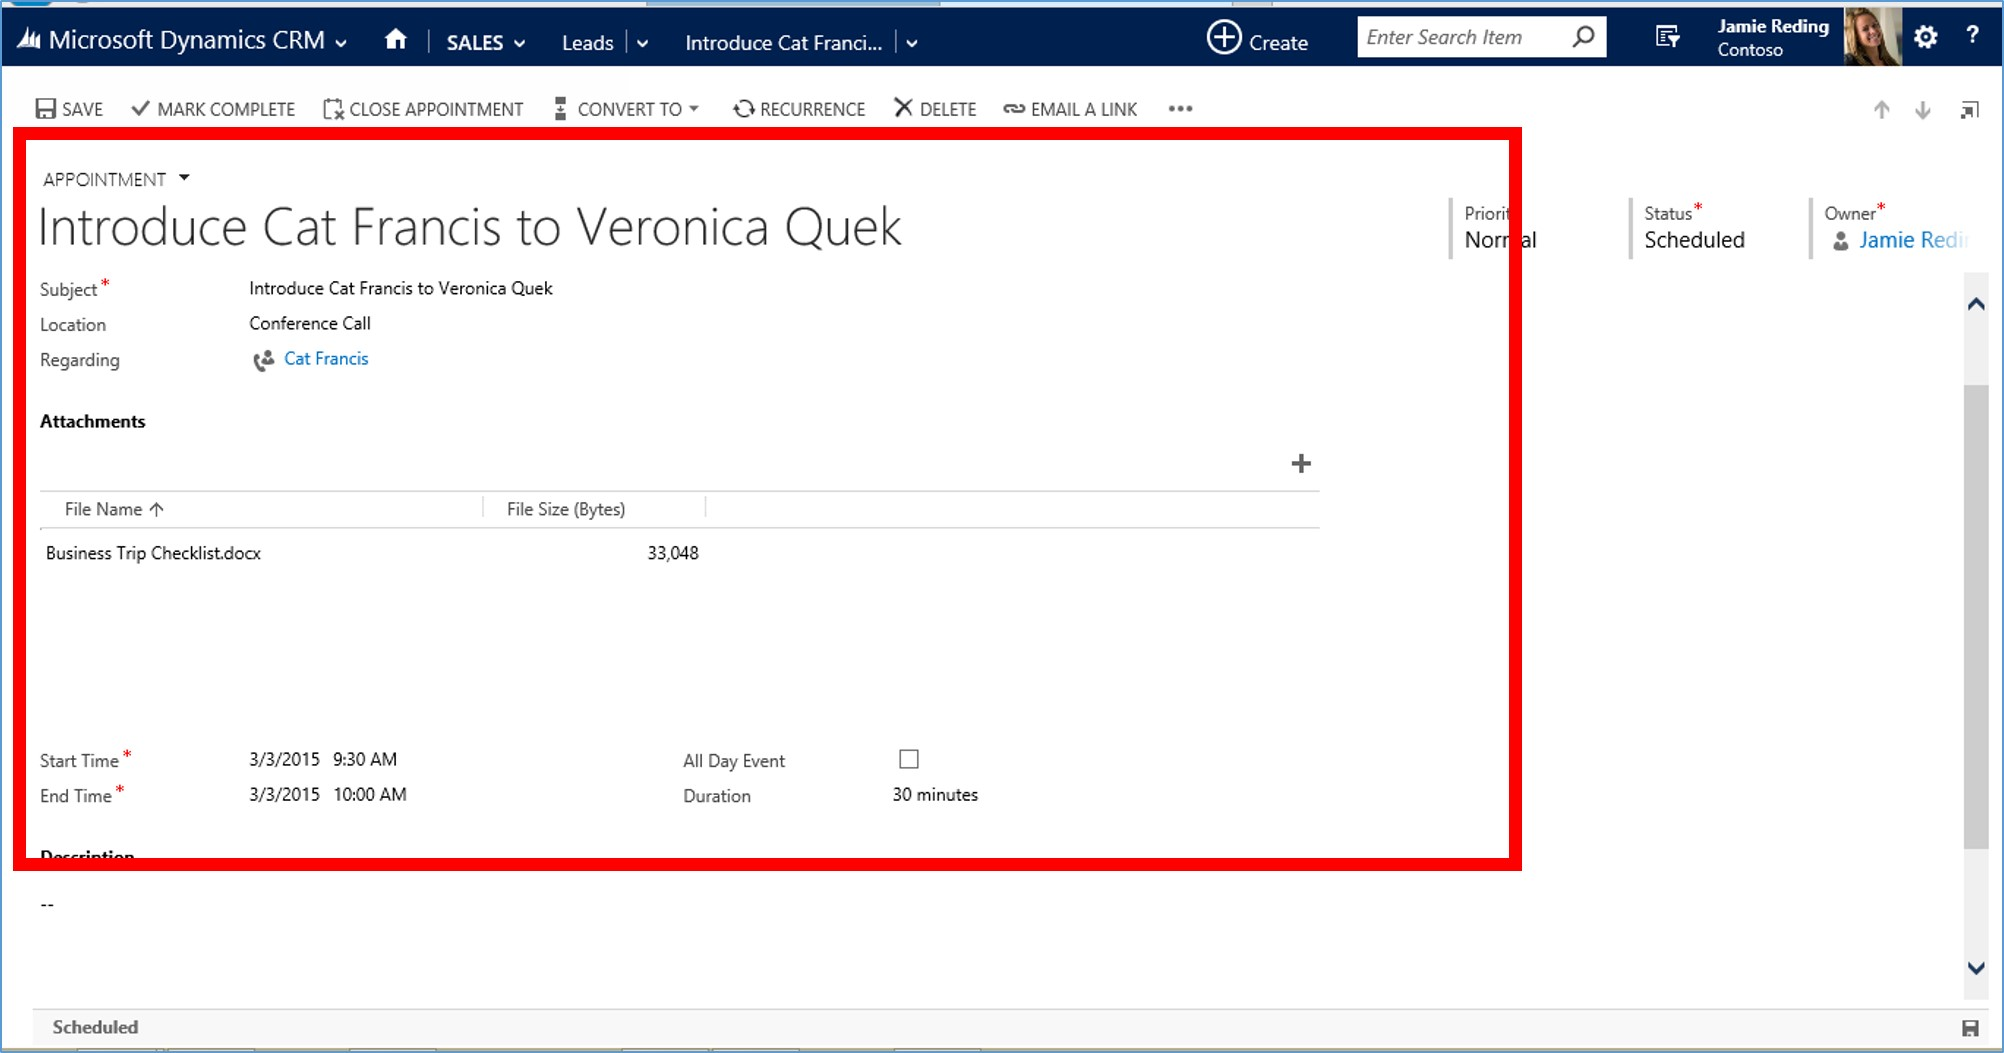 Microsoft Dynamics CRM 2015 Activity Records part 2 image4